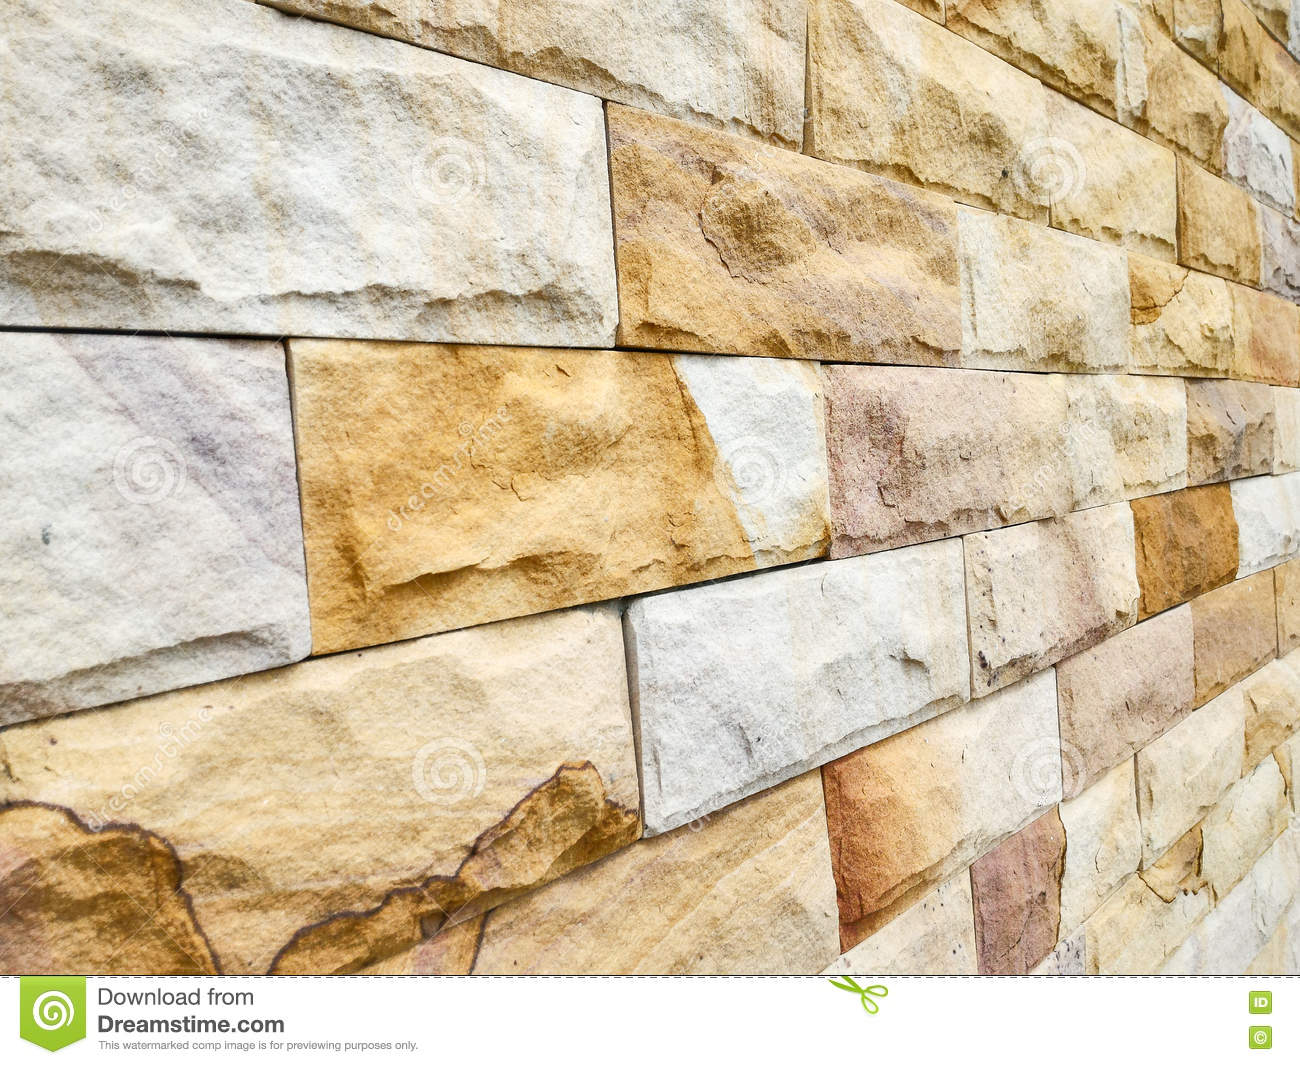 Brick wall stock image. Image of garden, abstract, building - 77351613